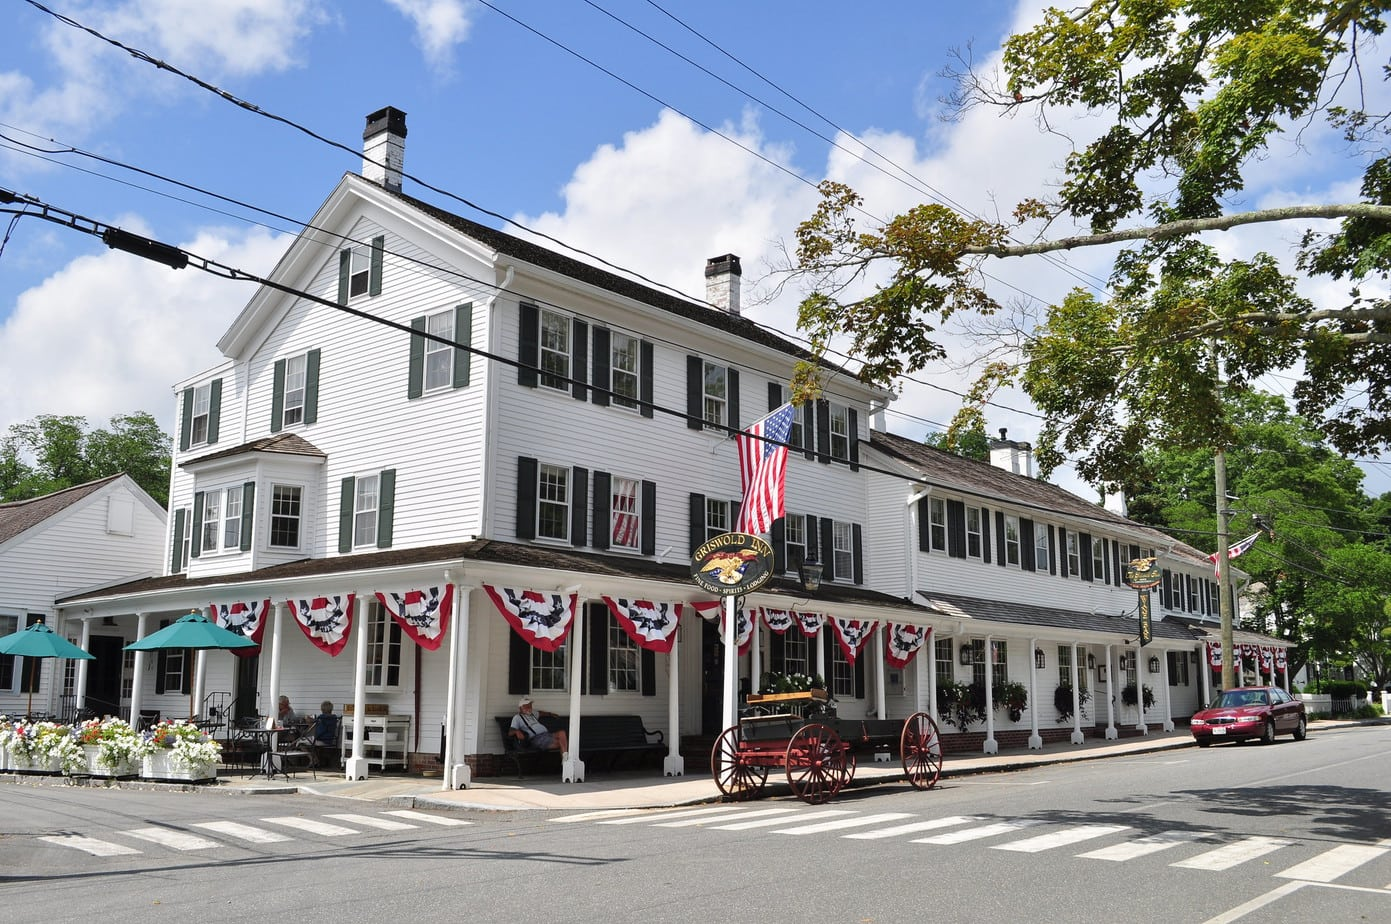 The Griswold Inn